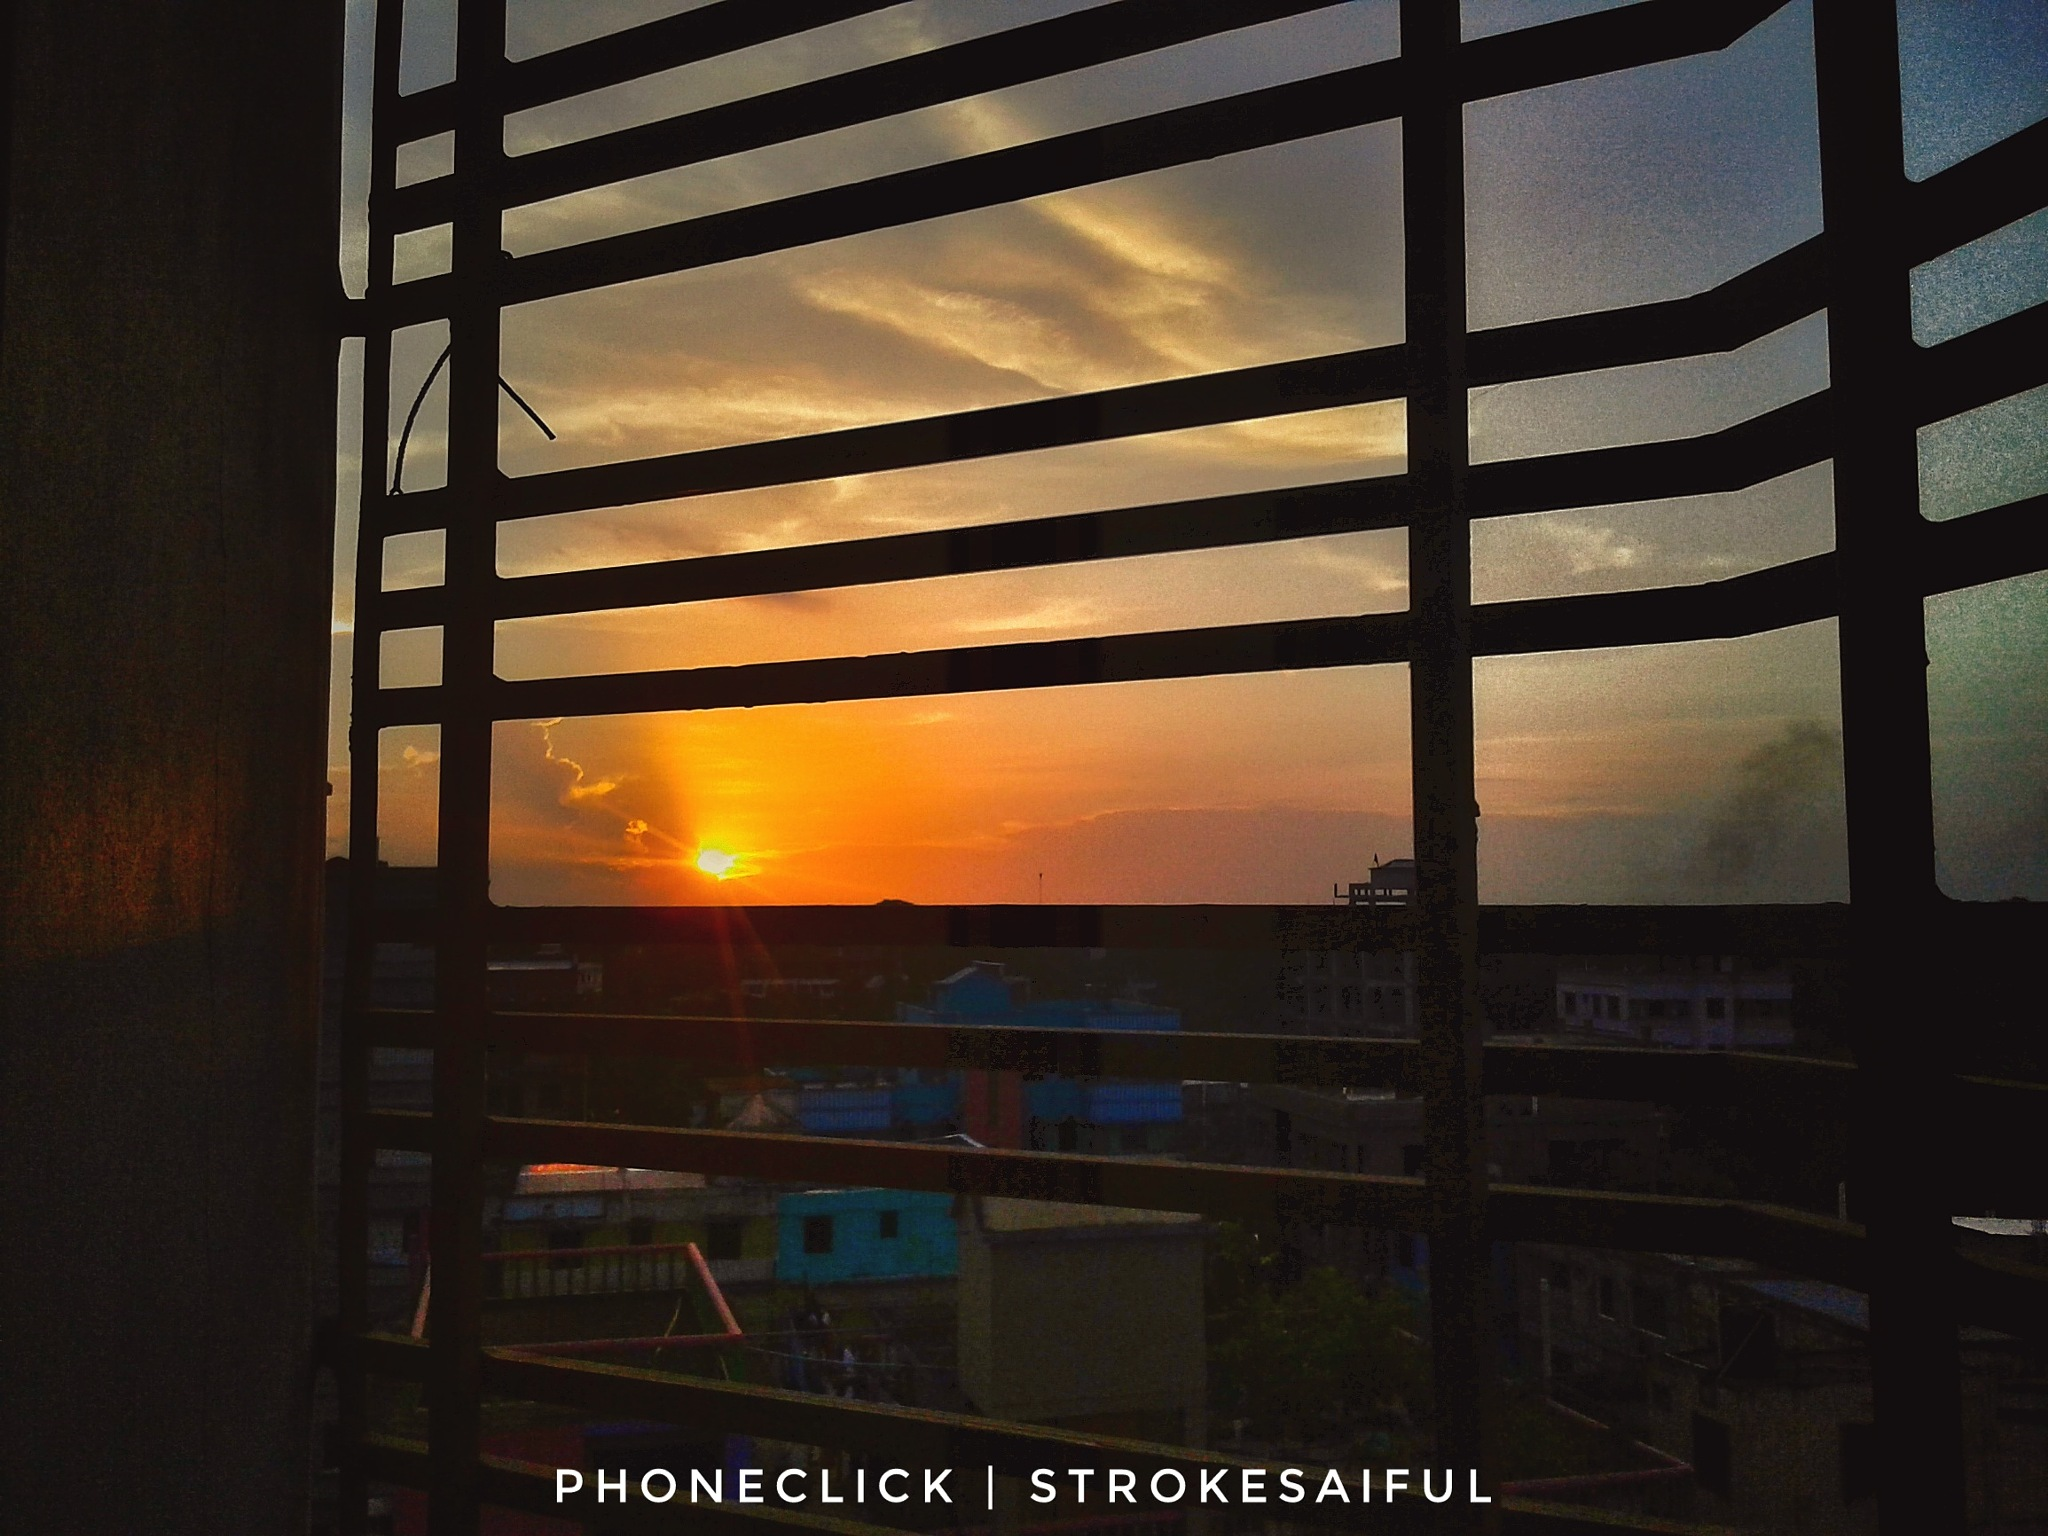 Untitled by ©STROKESAIFUL